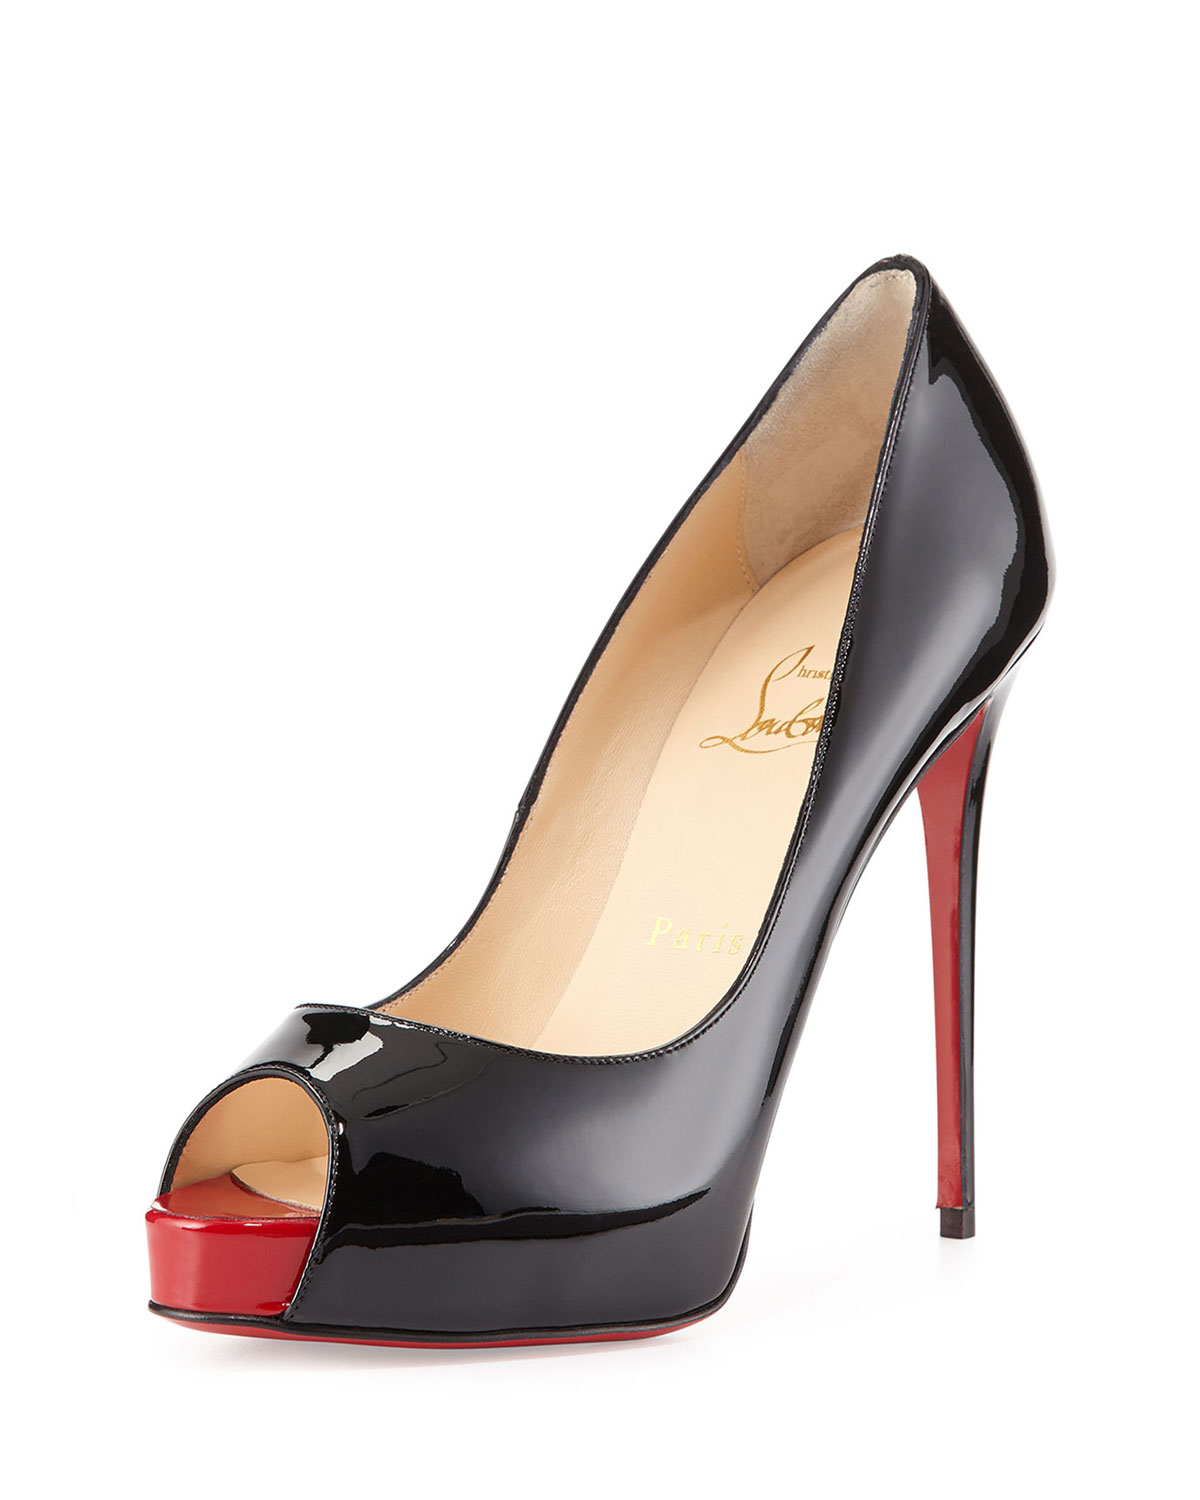 a9f00299db9a Christian Louboutin New Very Prive Patent Red Sole Pump